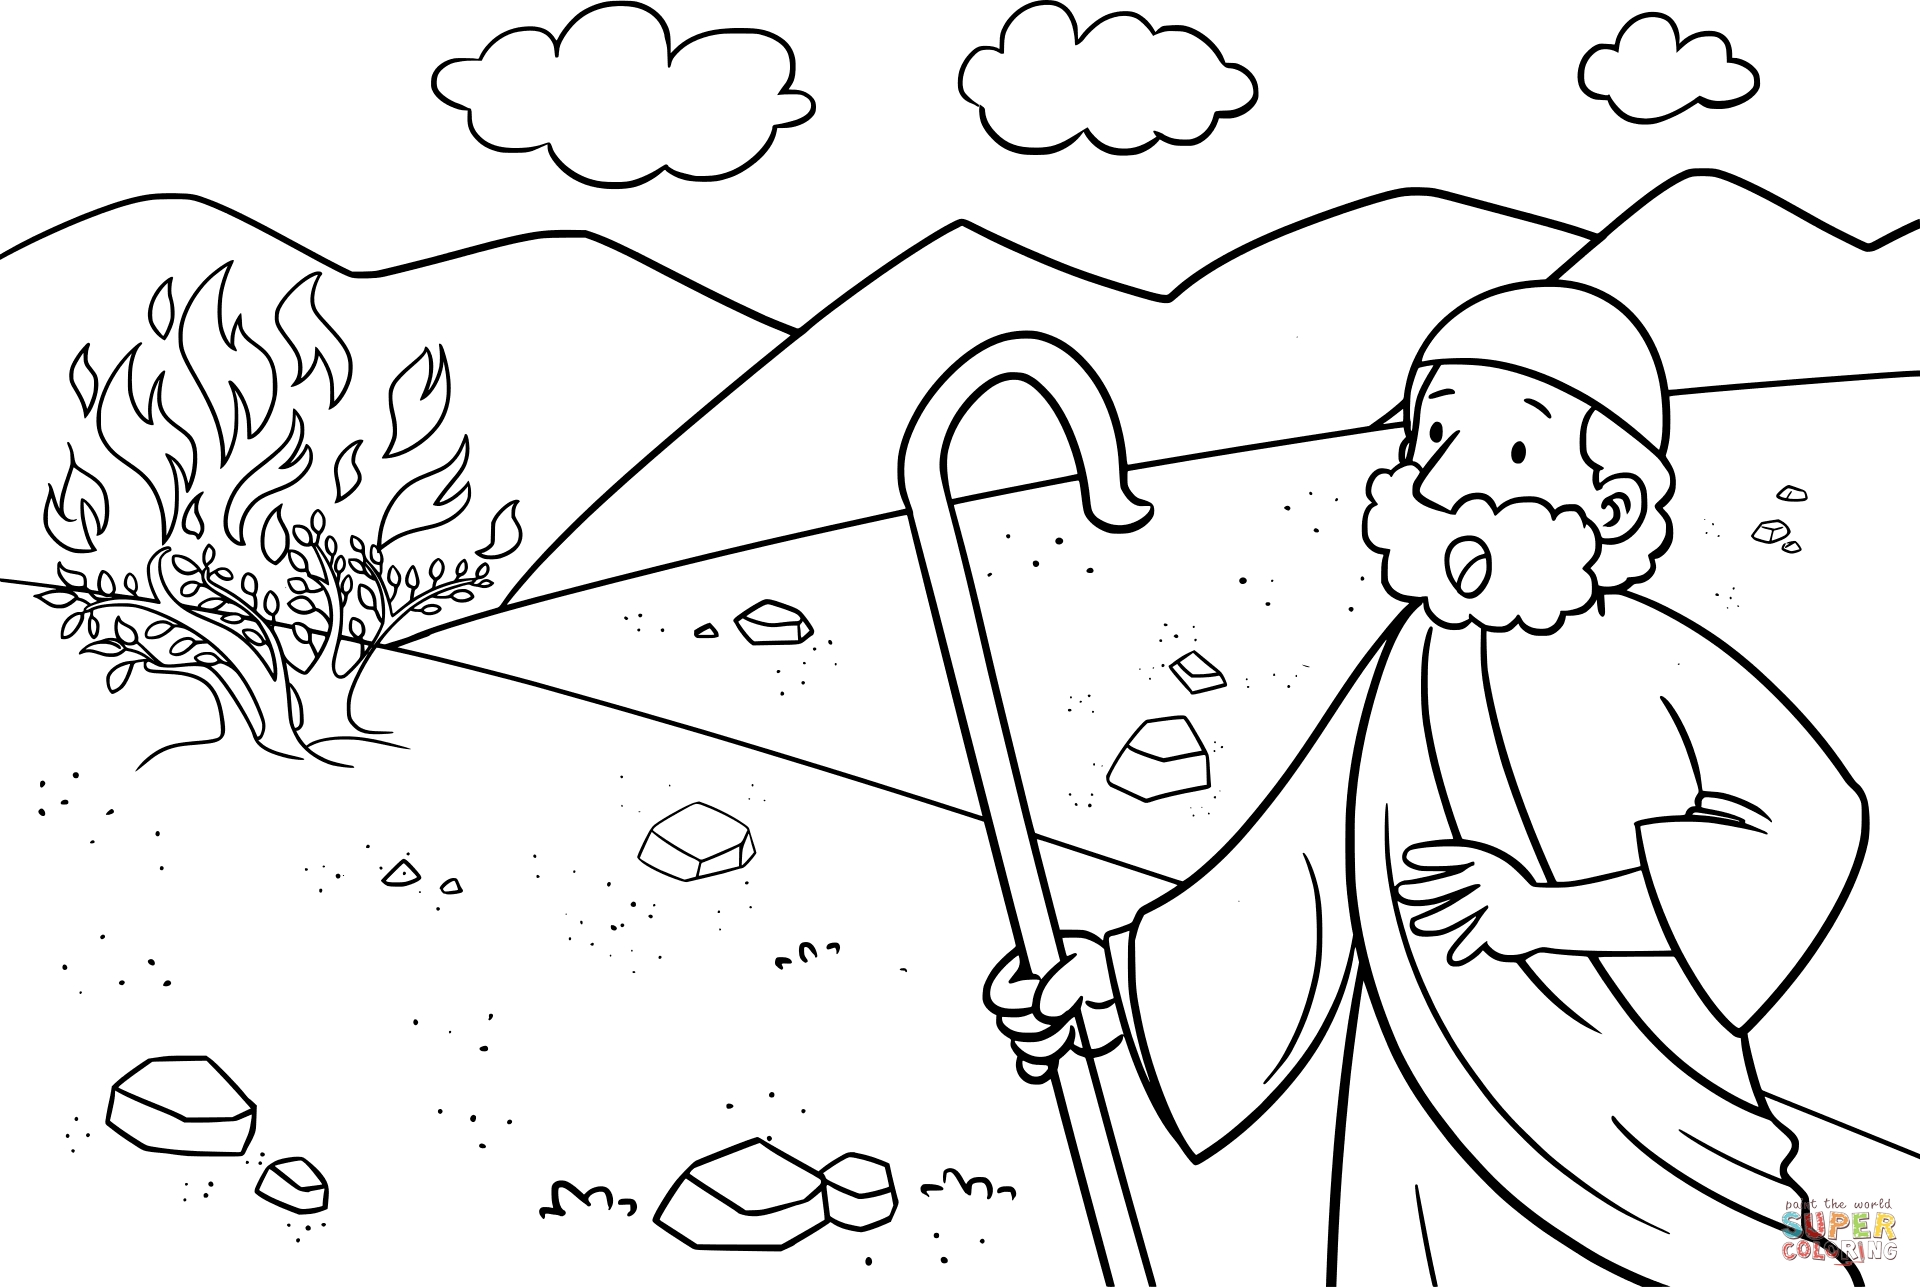 moses and the burning bush coloring page - moses and burning bush coloring page 2